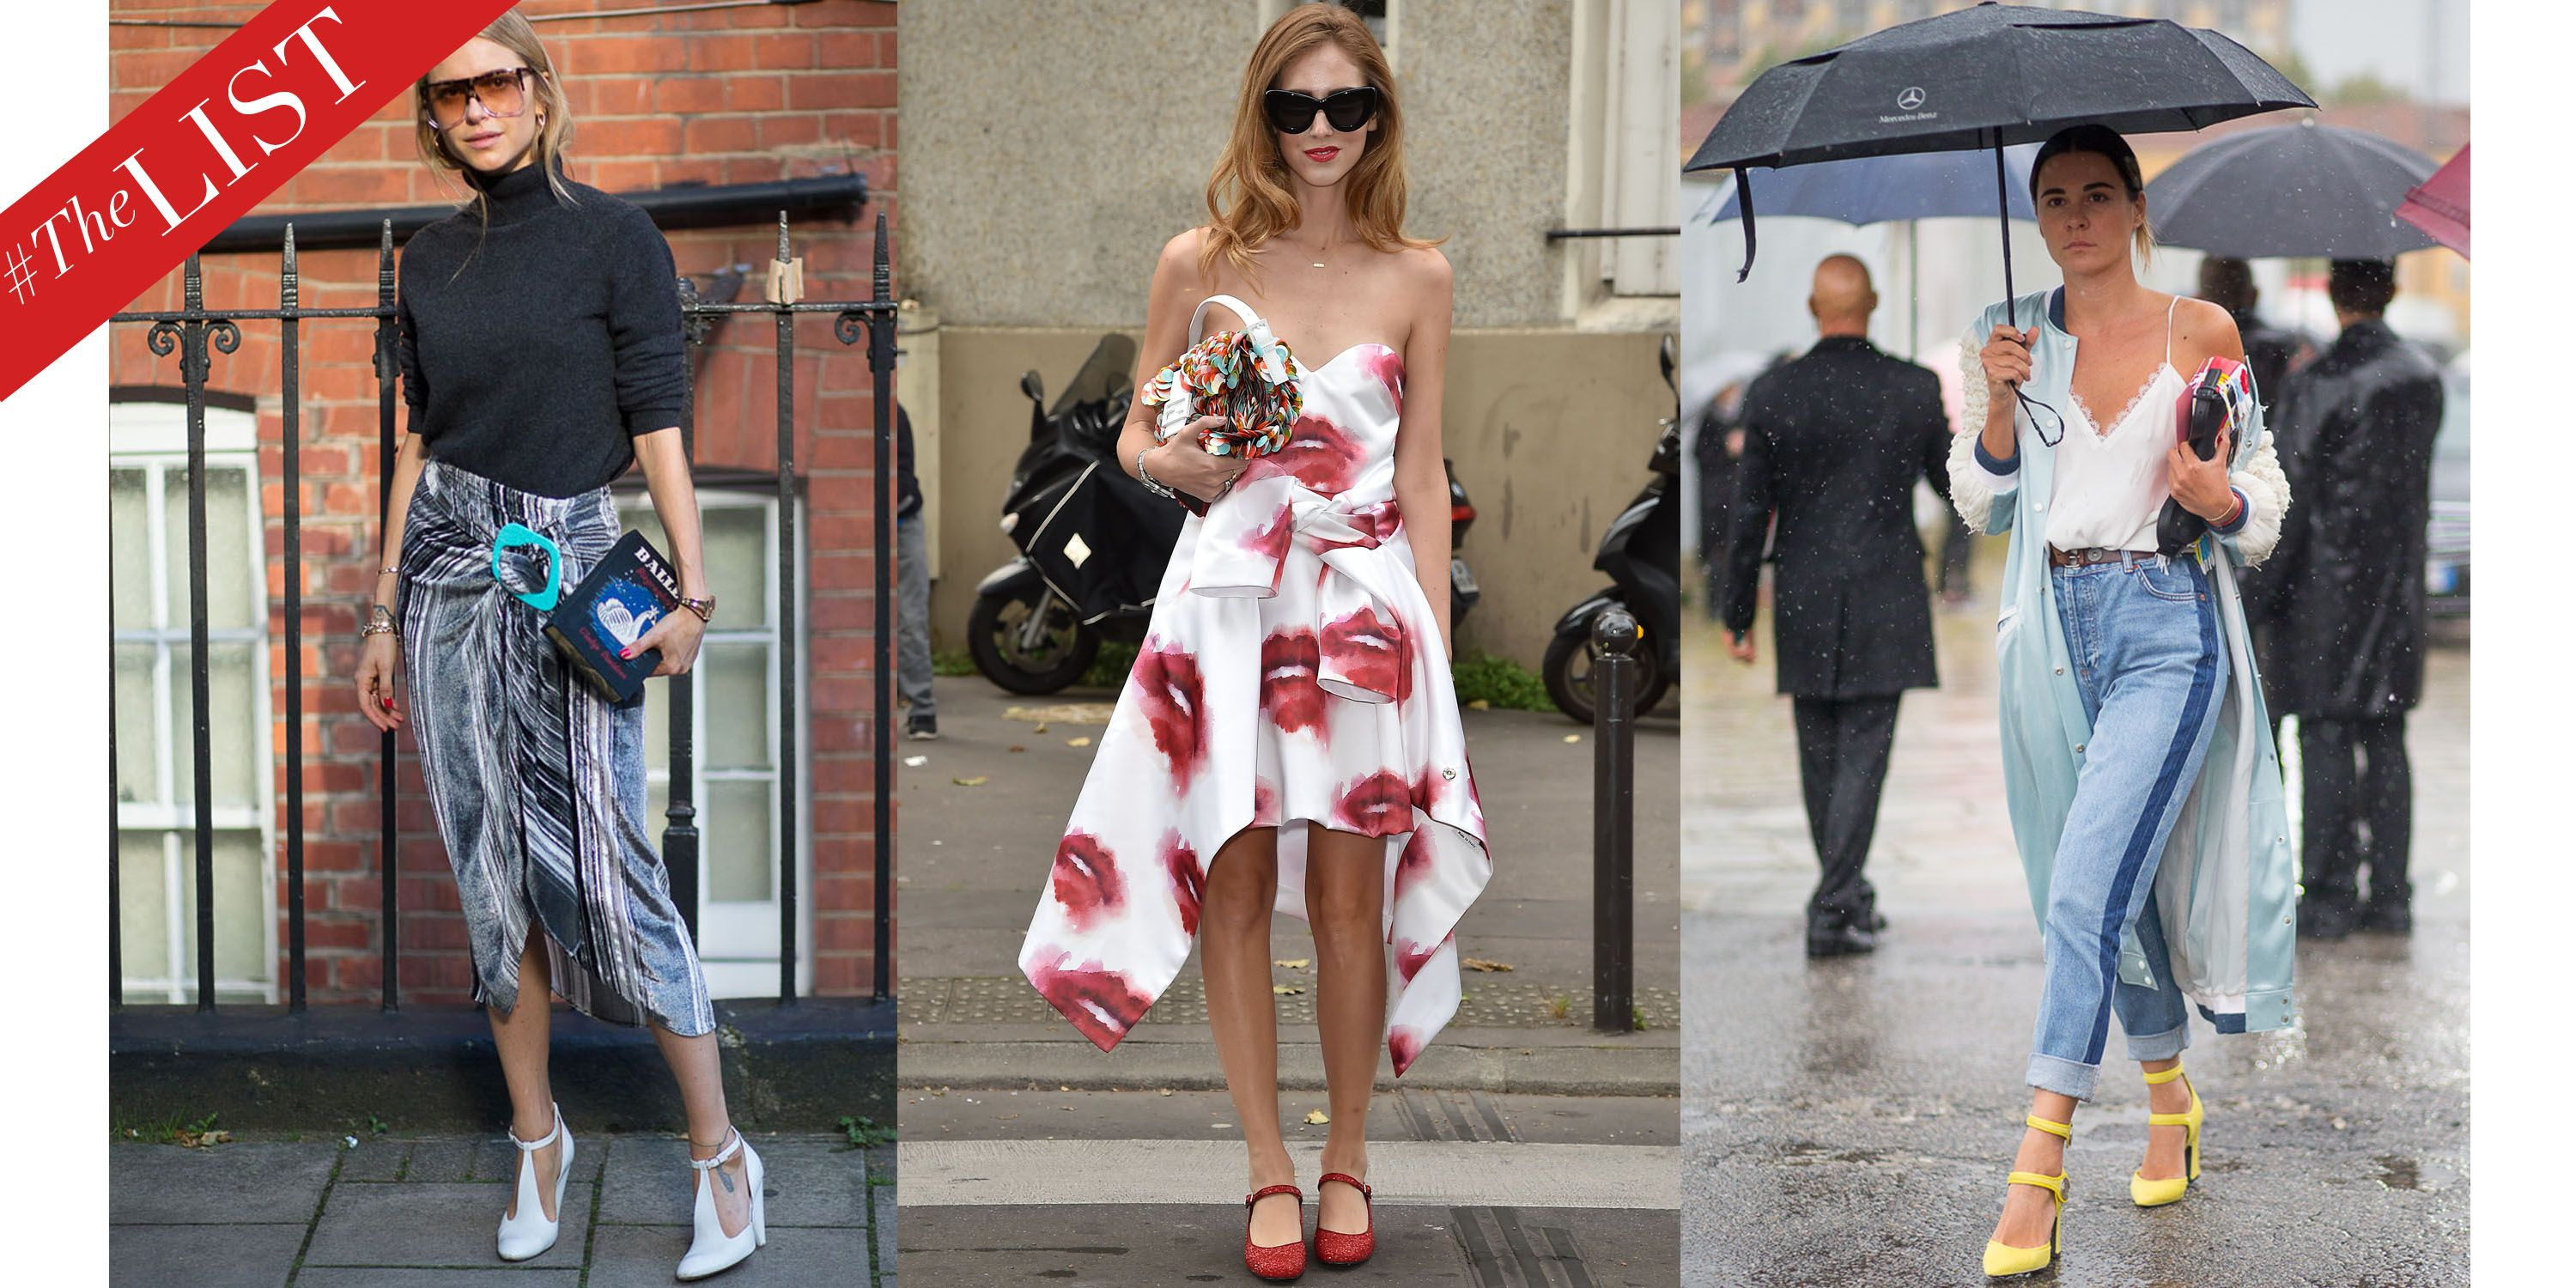 Mary Jane Shoe Moments in Fashion